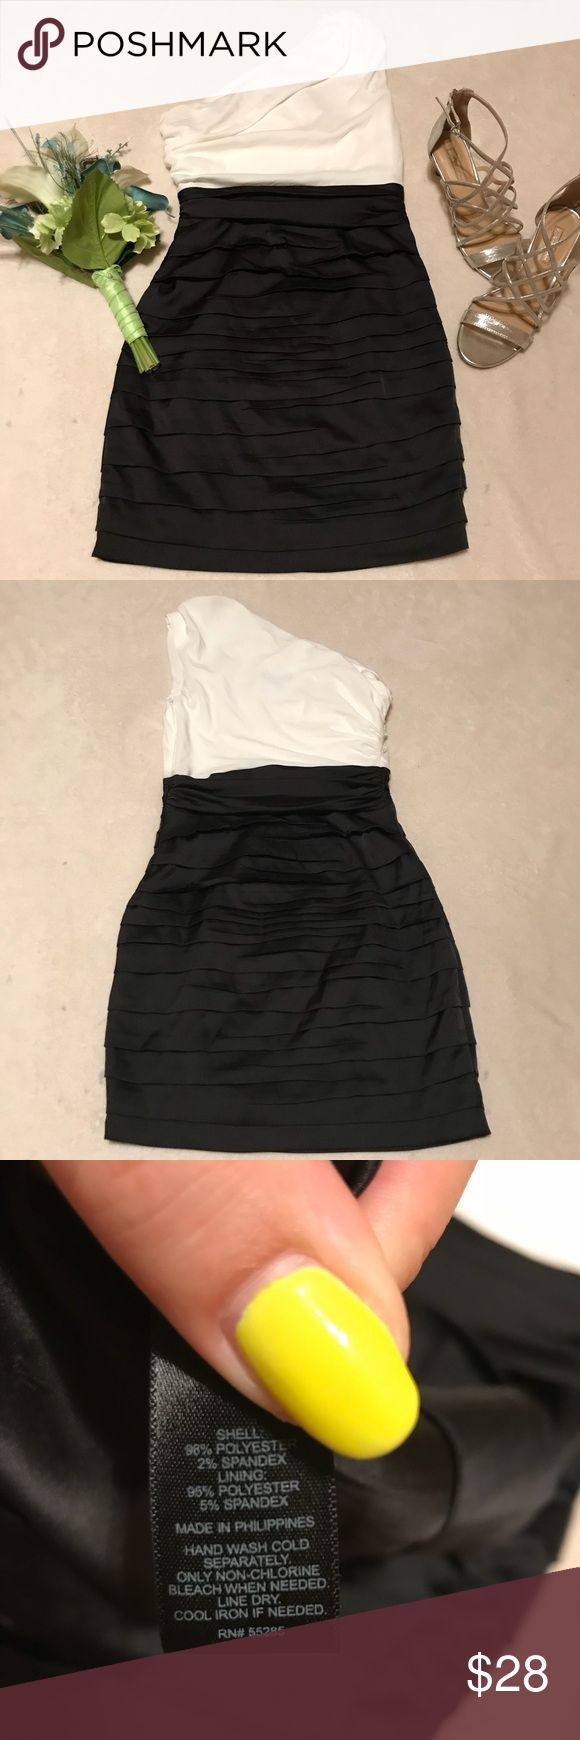 Black and White Ruched Cocktail Dress Classy black and white one sleeve cocktail dress in silky material. Side zipper on left side. Great condition. Express Dresses One Shoulder